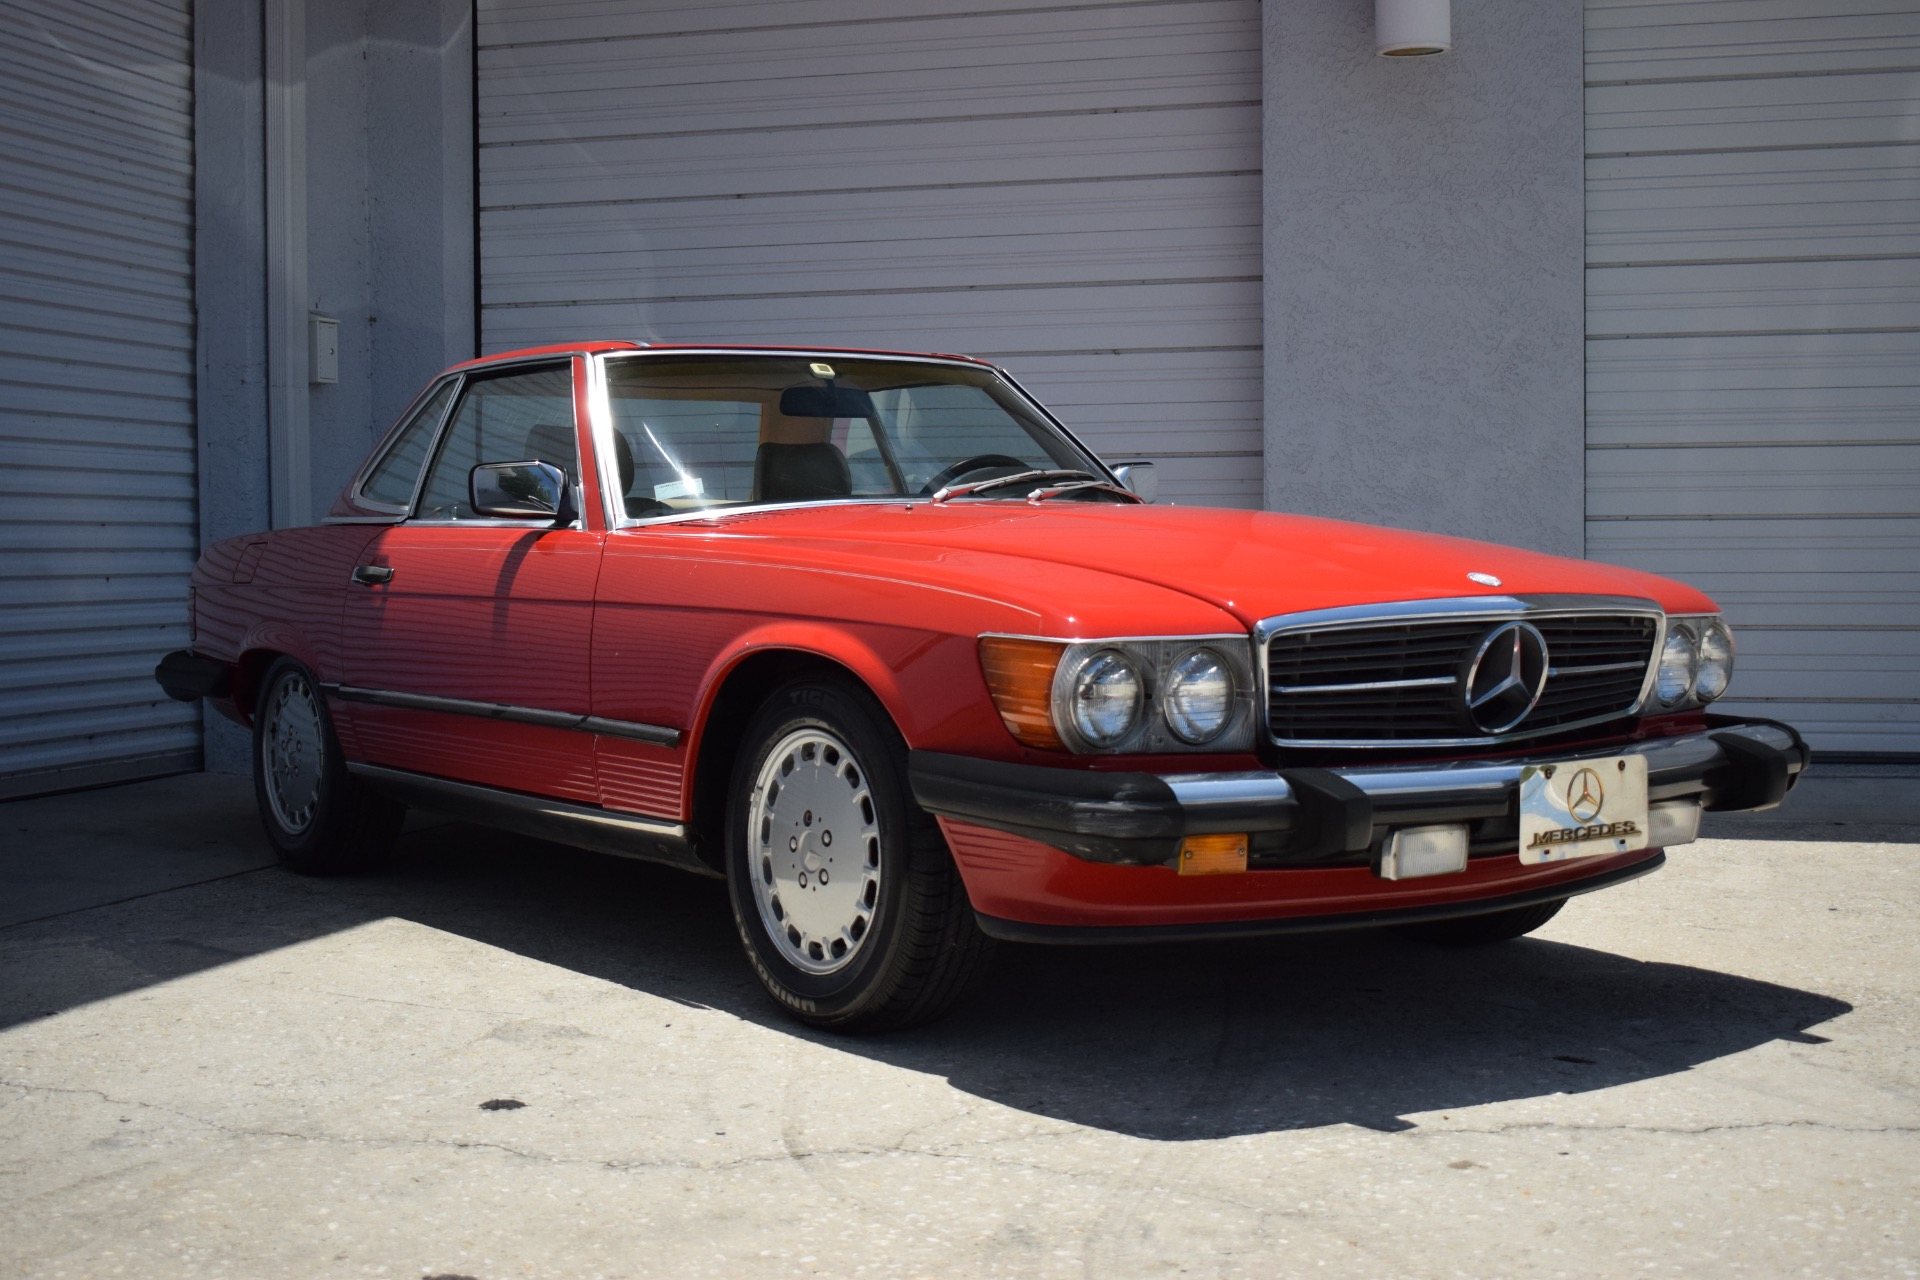 Used 1986 Mercedes-Benz 560 SL Cabrio for sale Sold at Track and Field Motors in Safety Harbor FL 34695 1